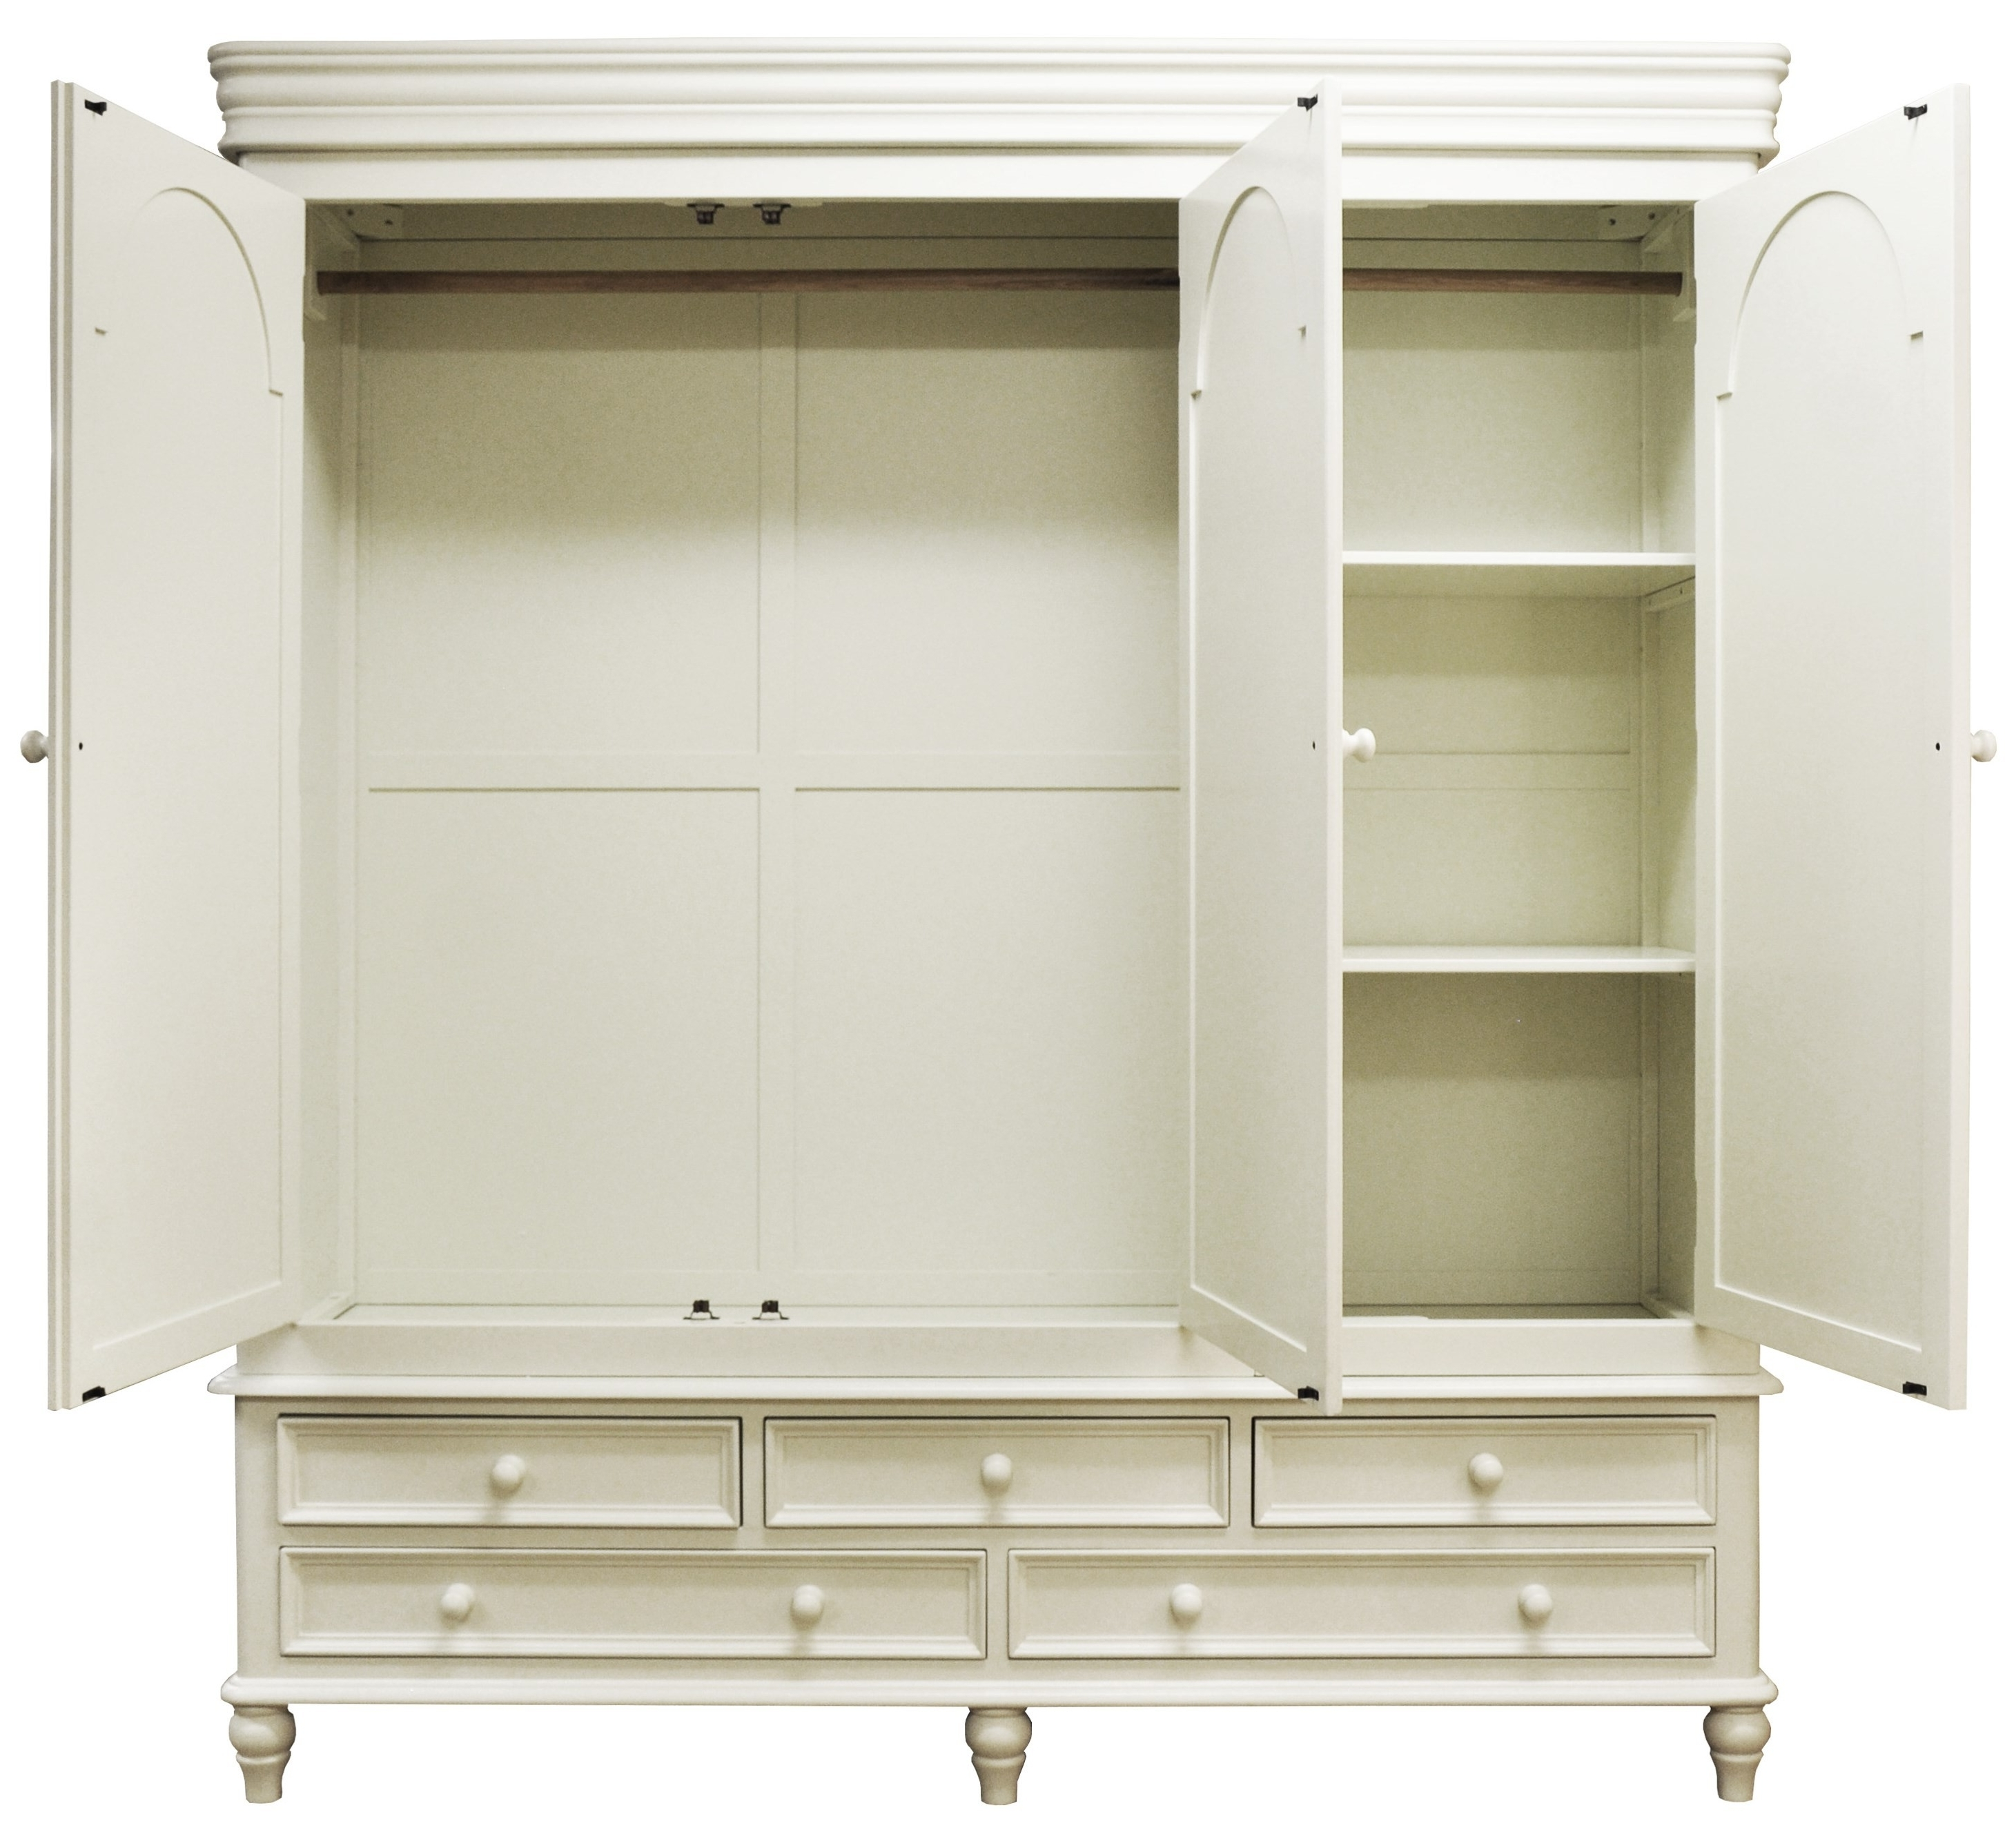 Fashionable Double Wardrobes With Drawers And Shelves With Large White Wooden Wardrobe With Many Drawers On The Bottom (View 4 of 15)